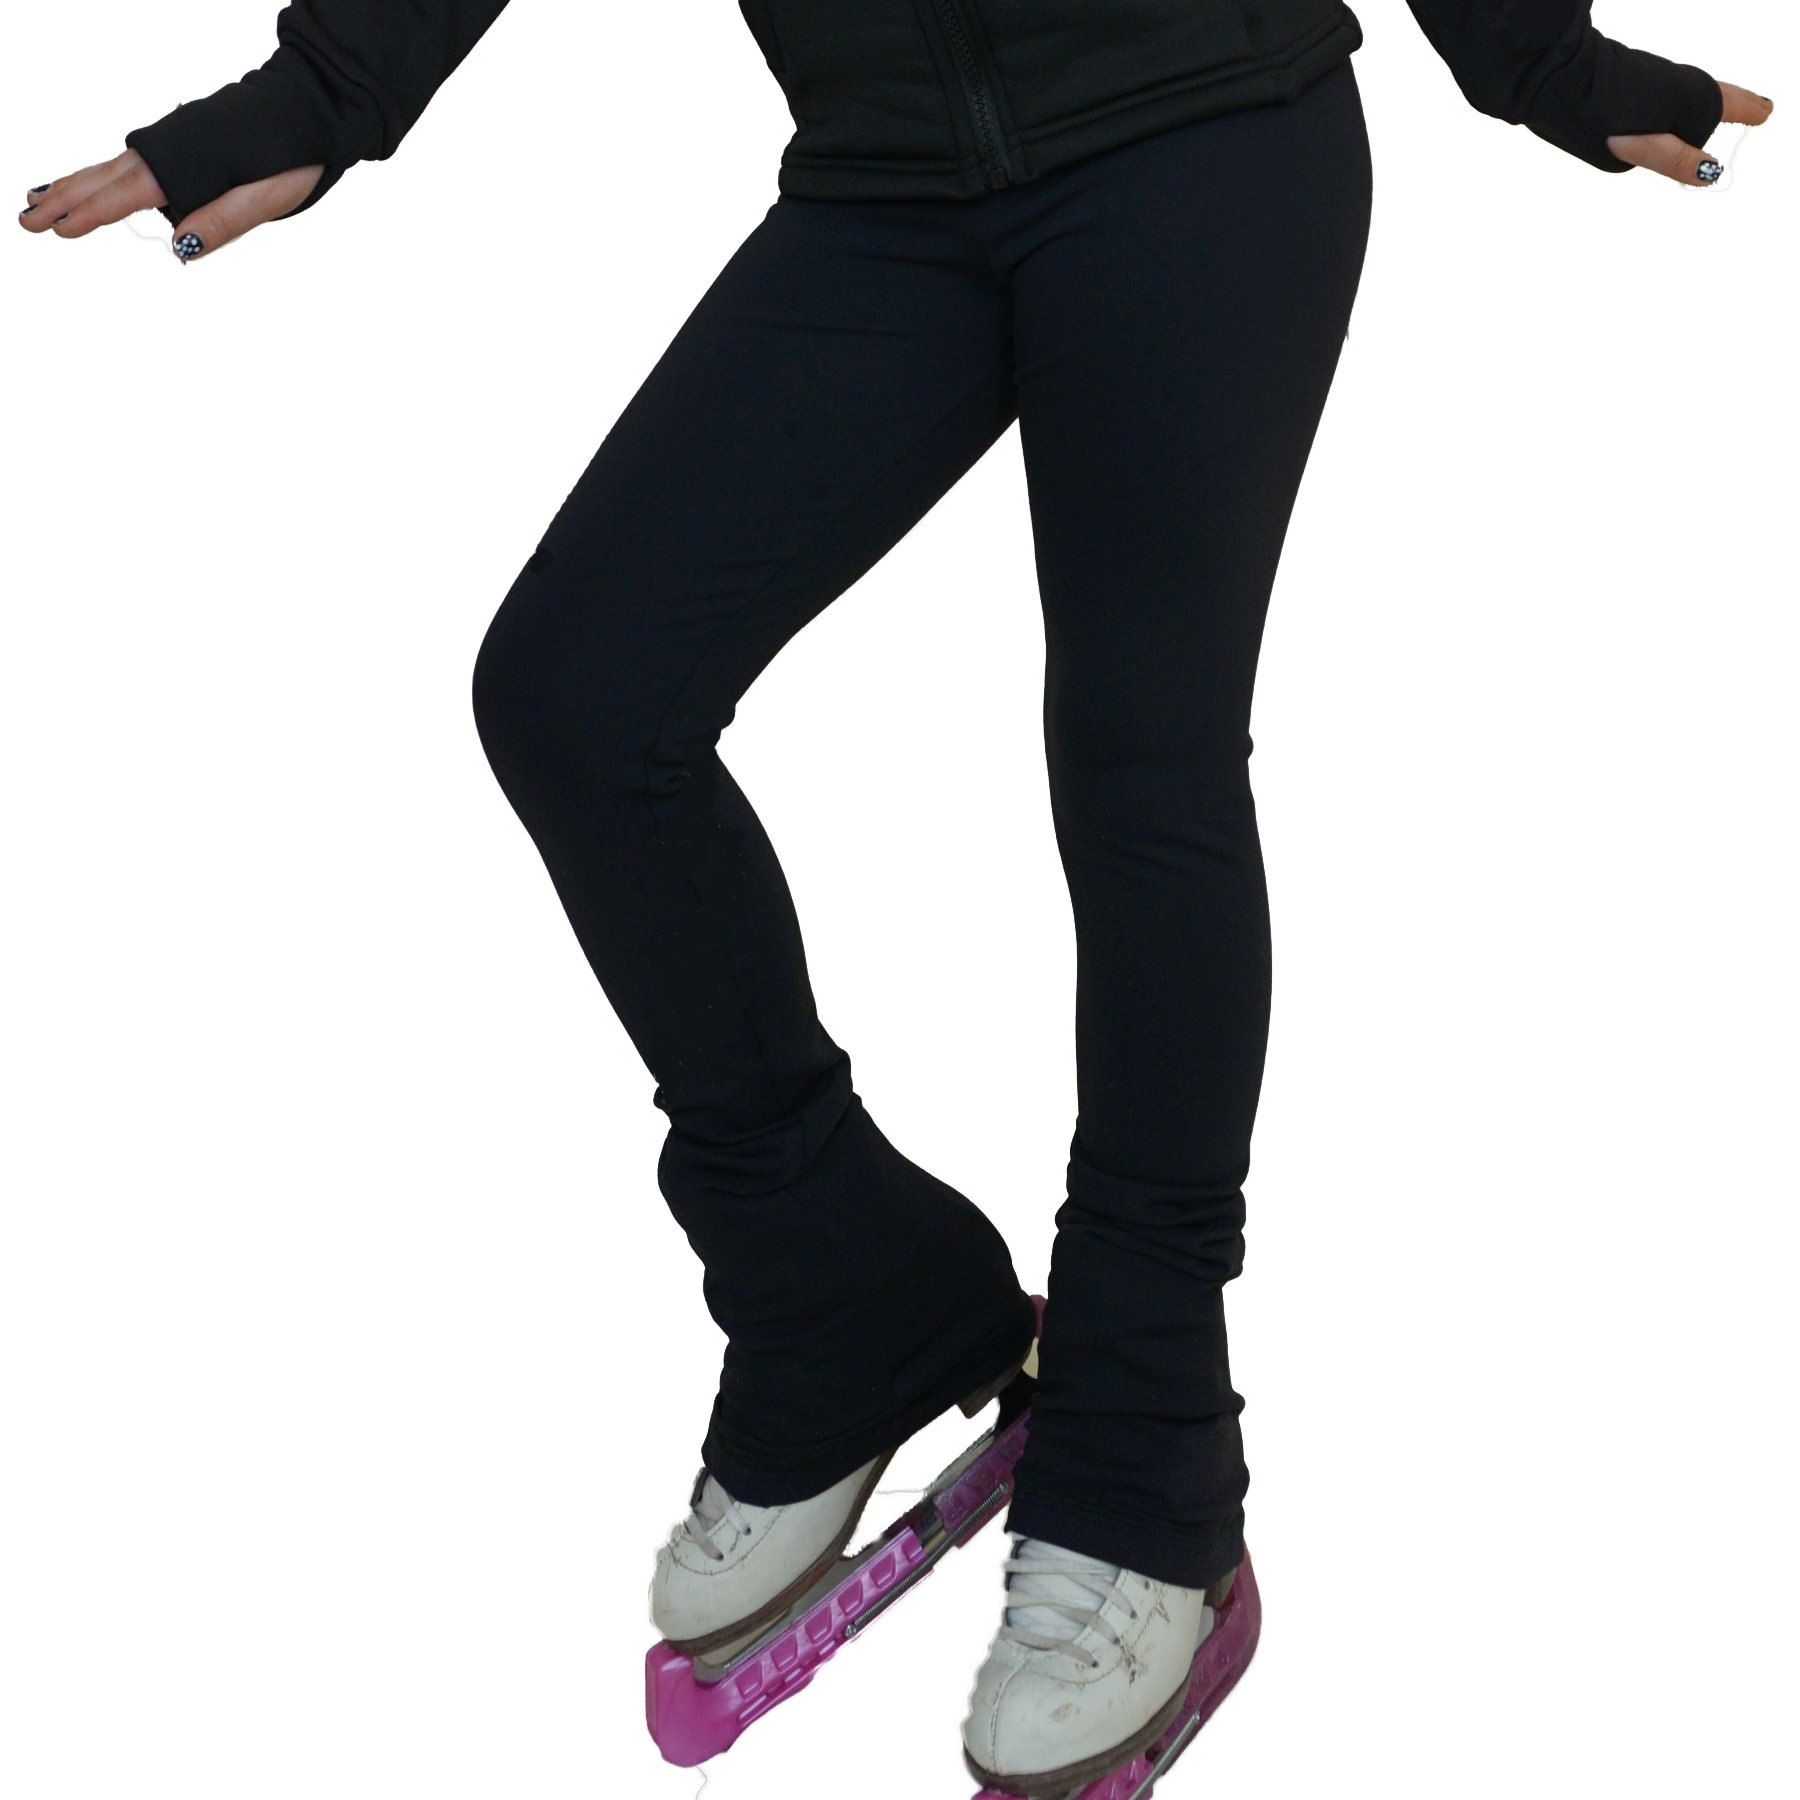 Victoria's Challenge Polartec Ice Figure Skating Pants VCSP17 CL Dark Navy by Victoria's Challenge